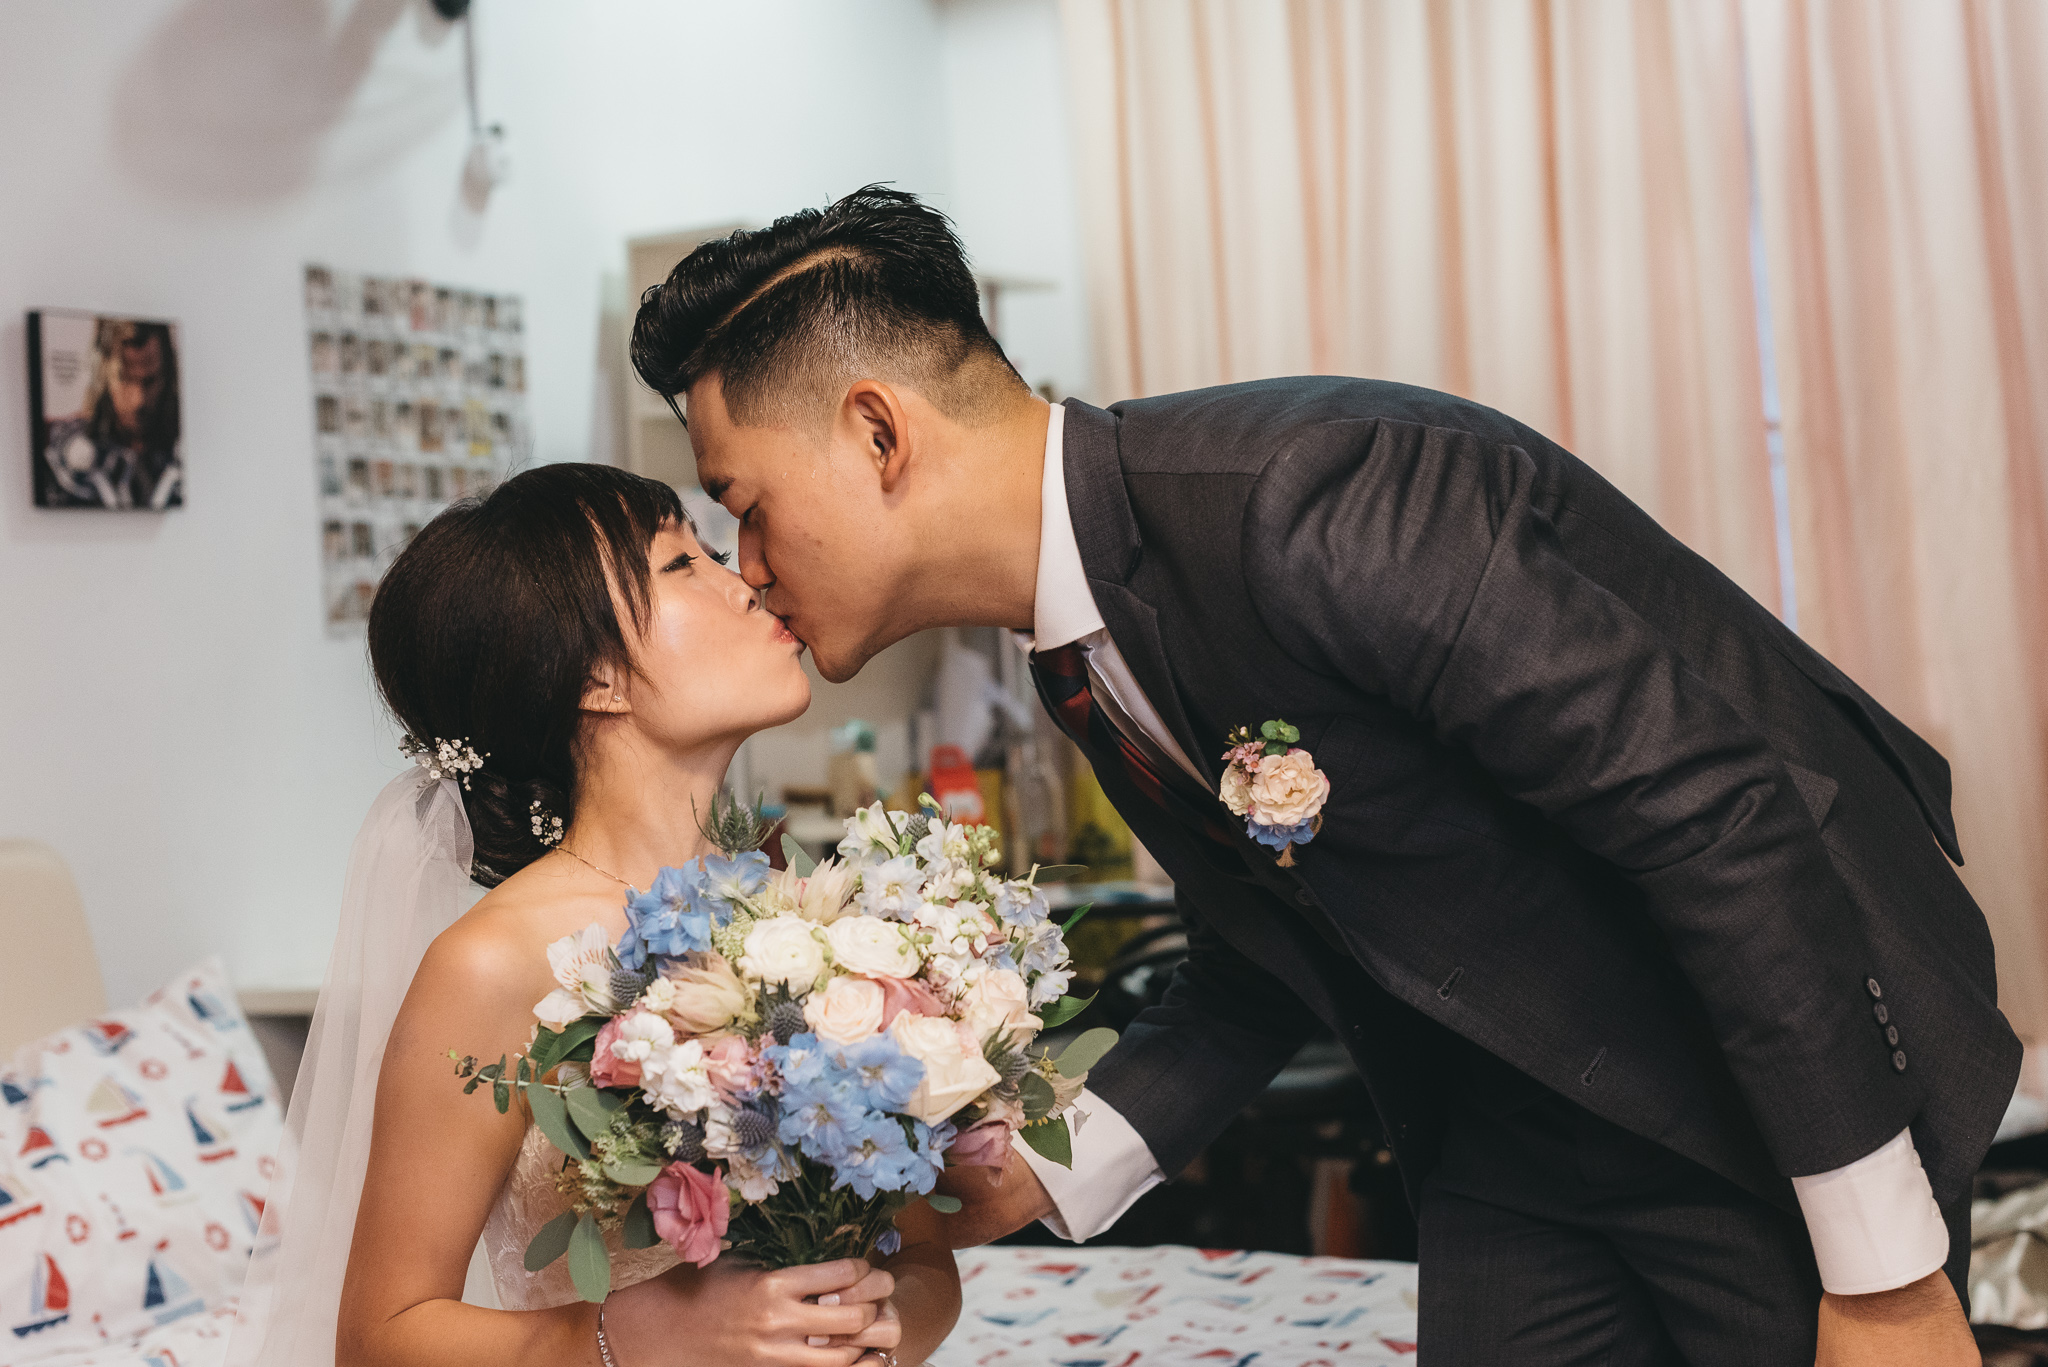 Alice & Wei Bang Wedding Day Highlights (resized for sharing) - 037.jpg